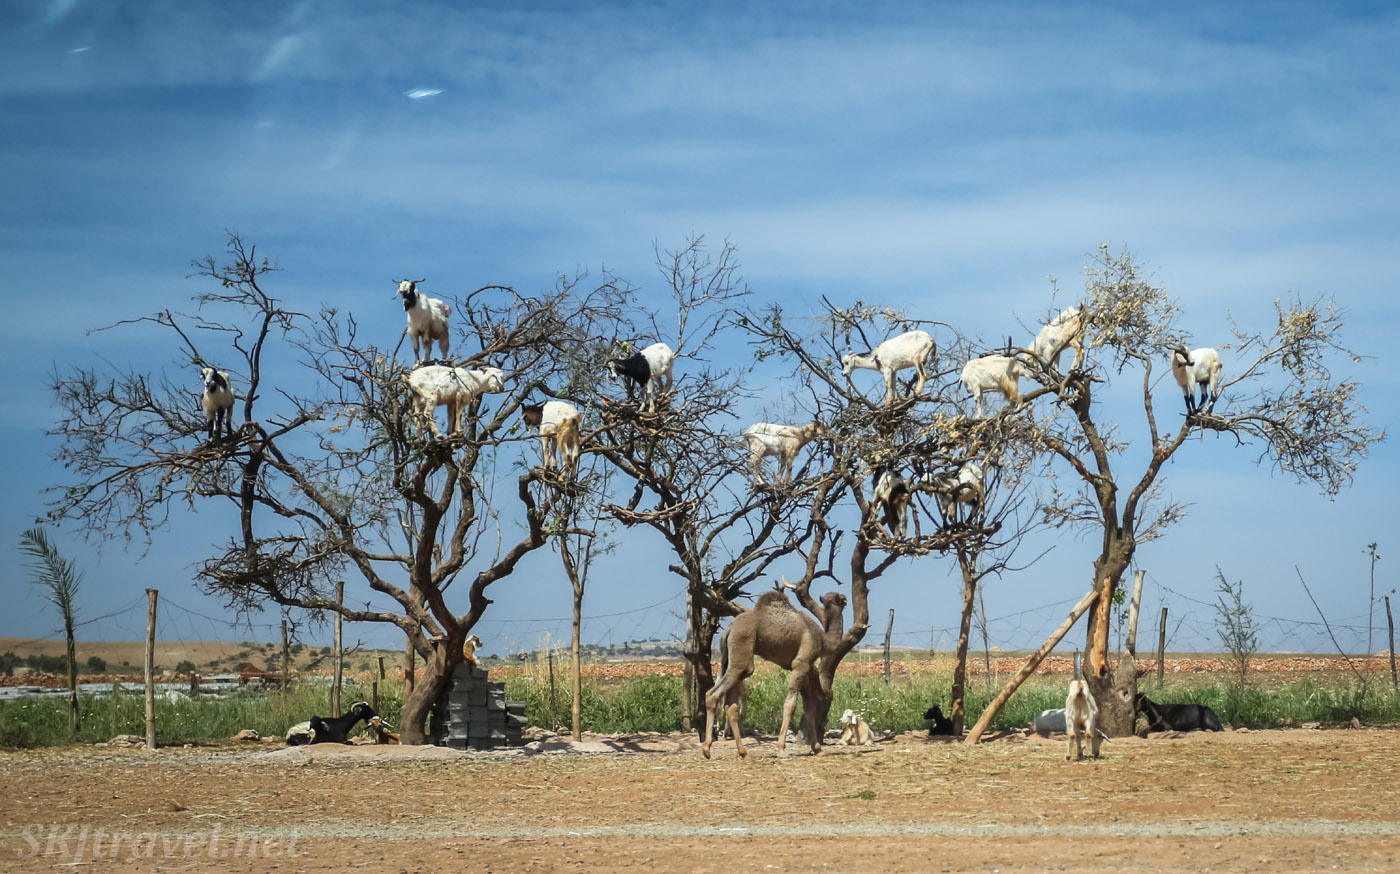 Goats in trees on the road between Marrakech and Essaouira, Morocco.